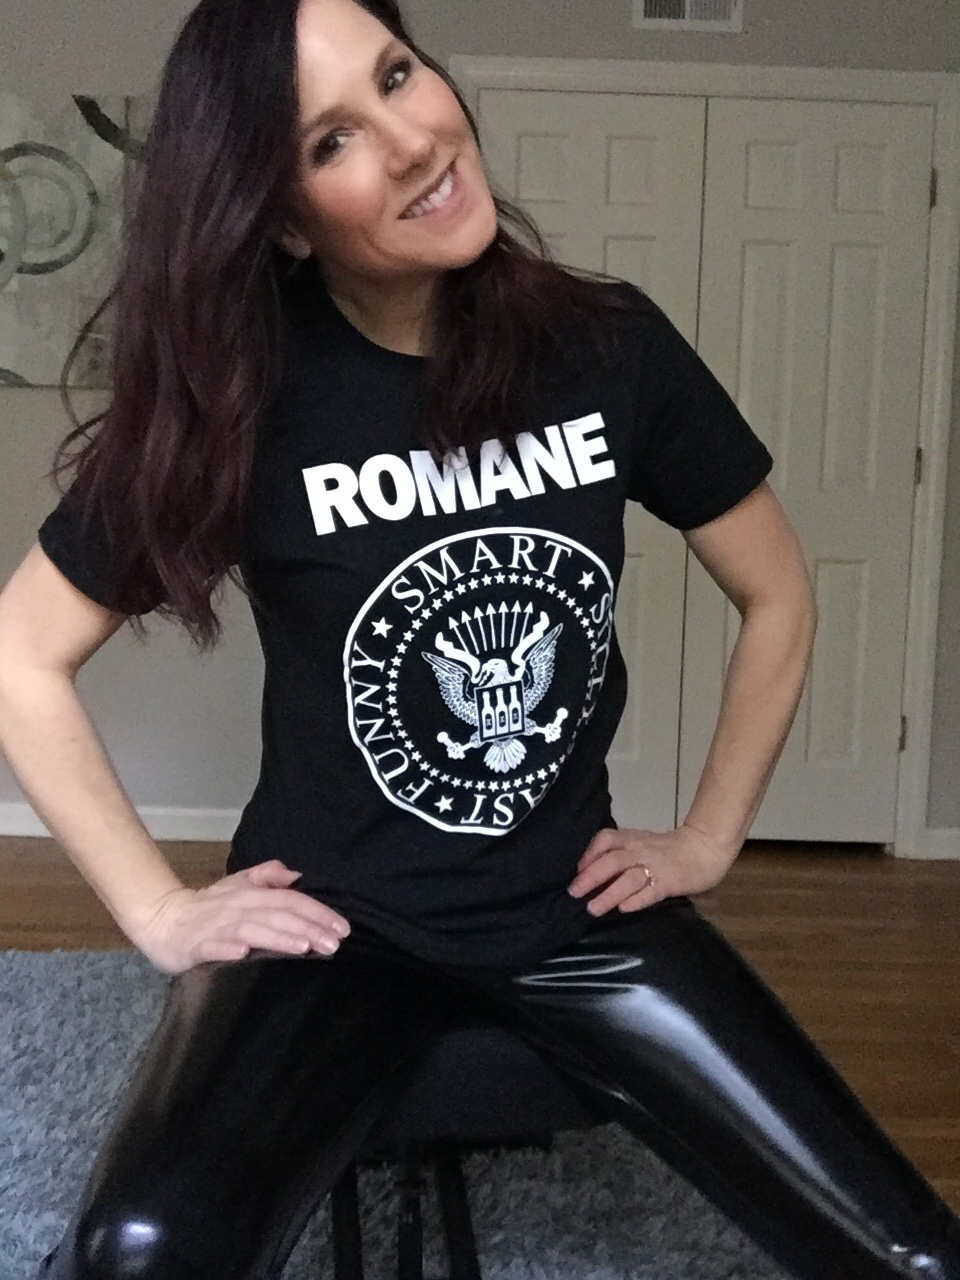 Romane T-Shirt Merch